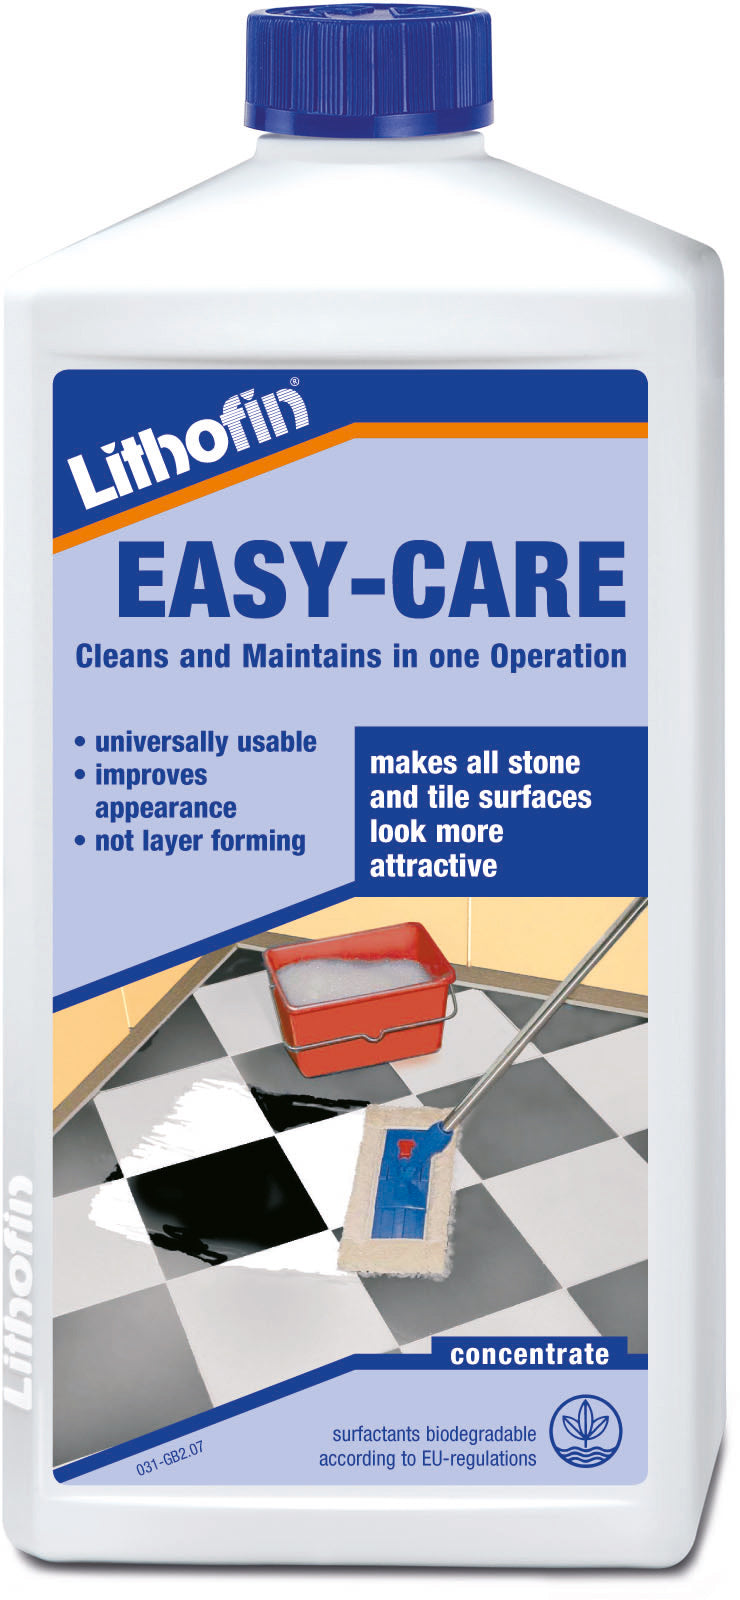 Lithofin Easy-Care - cleans and maintains in one operation